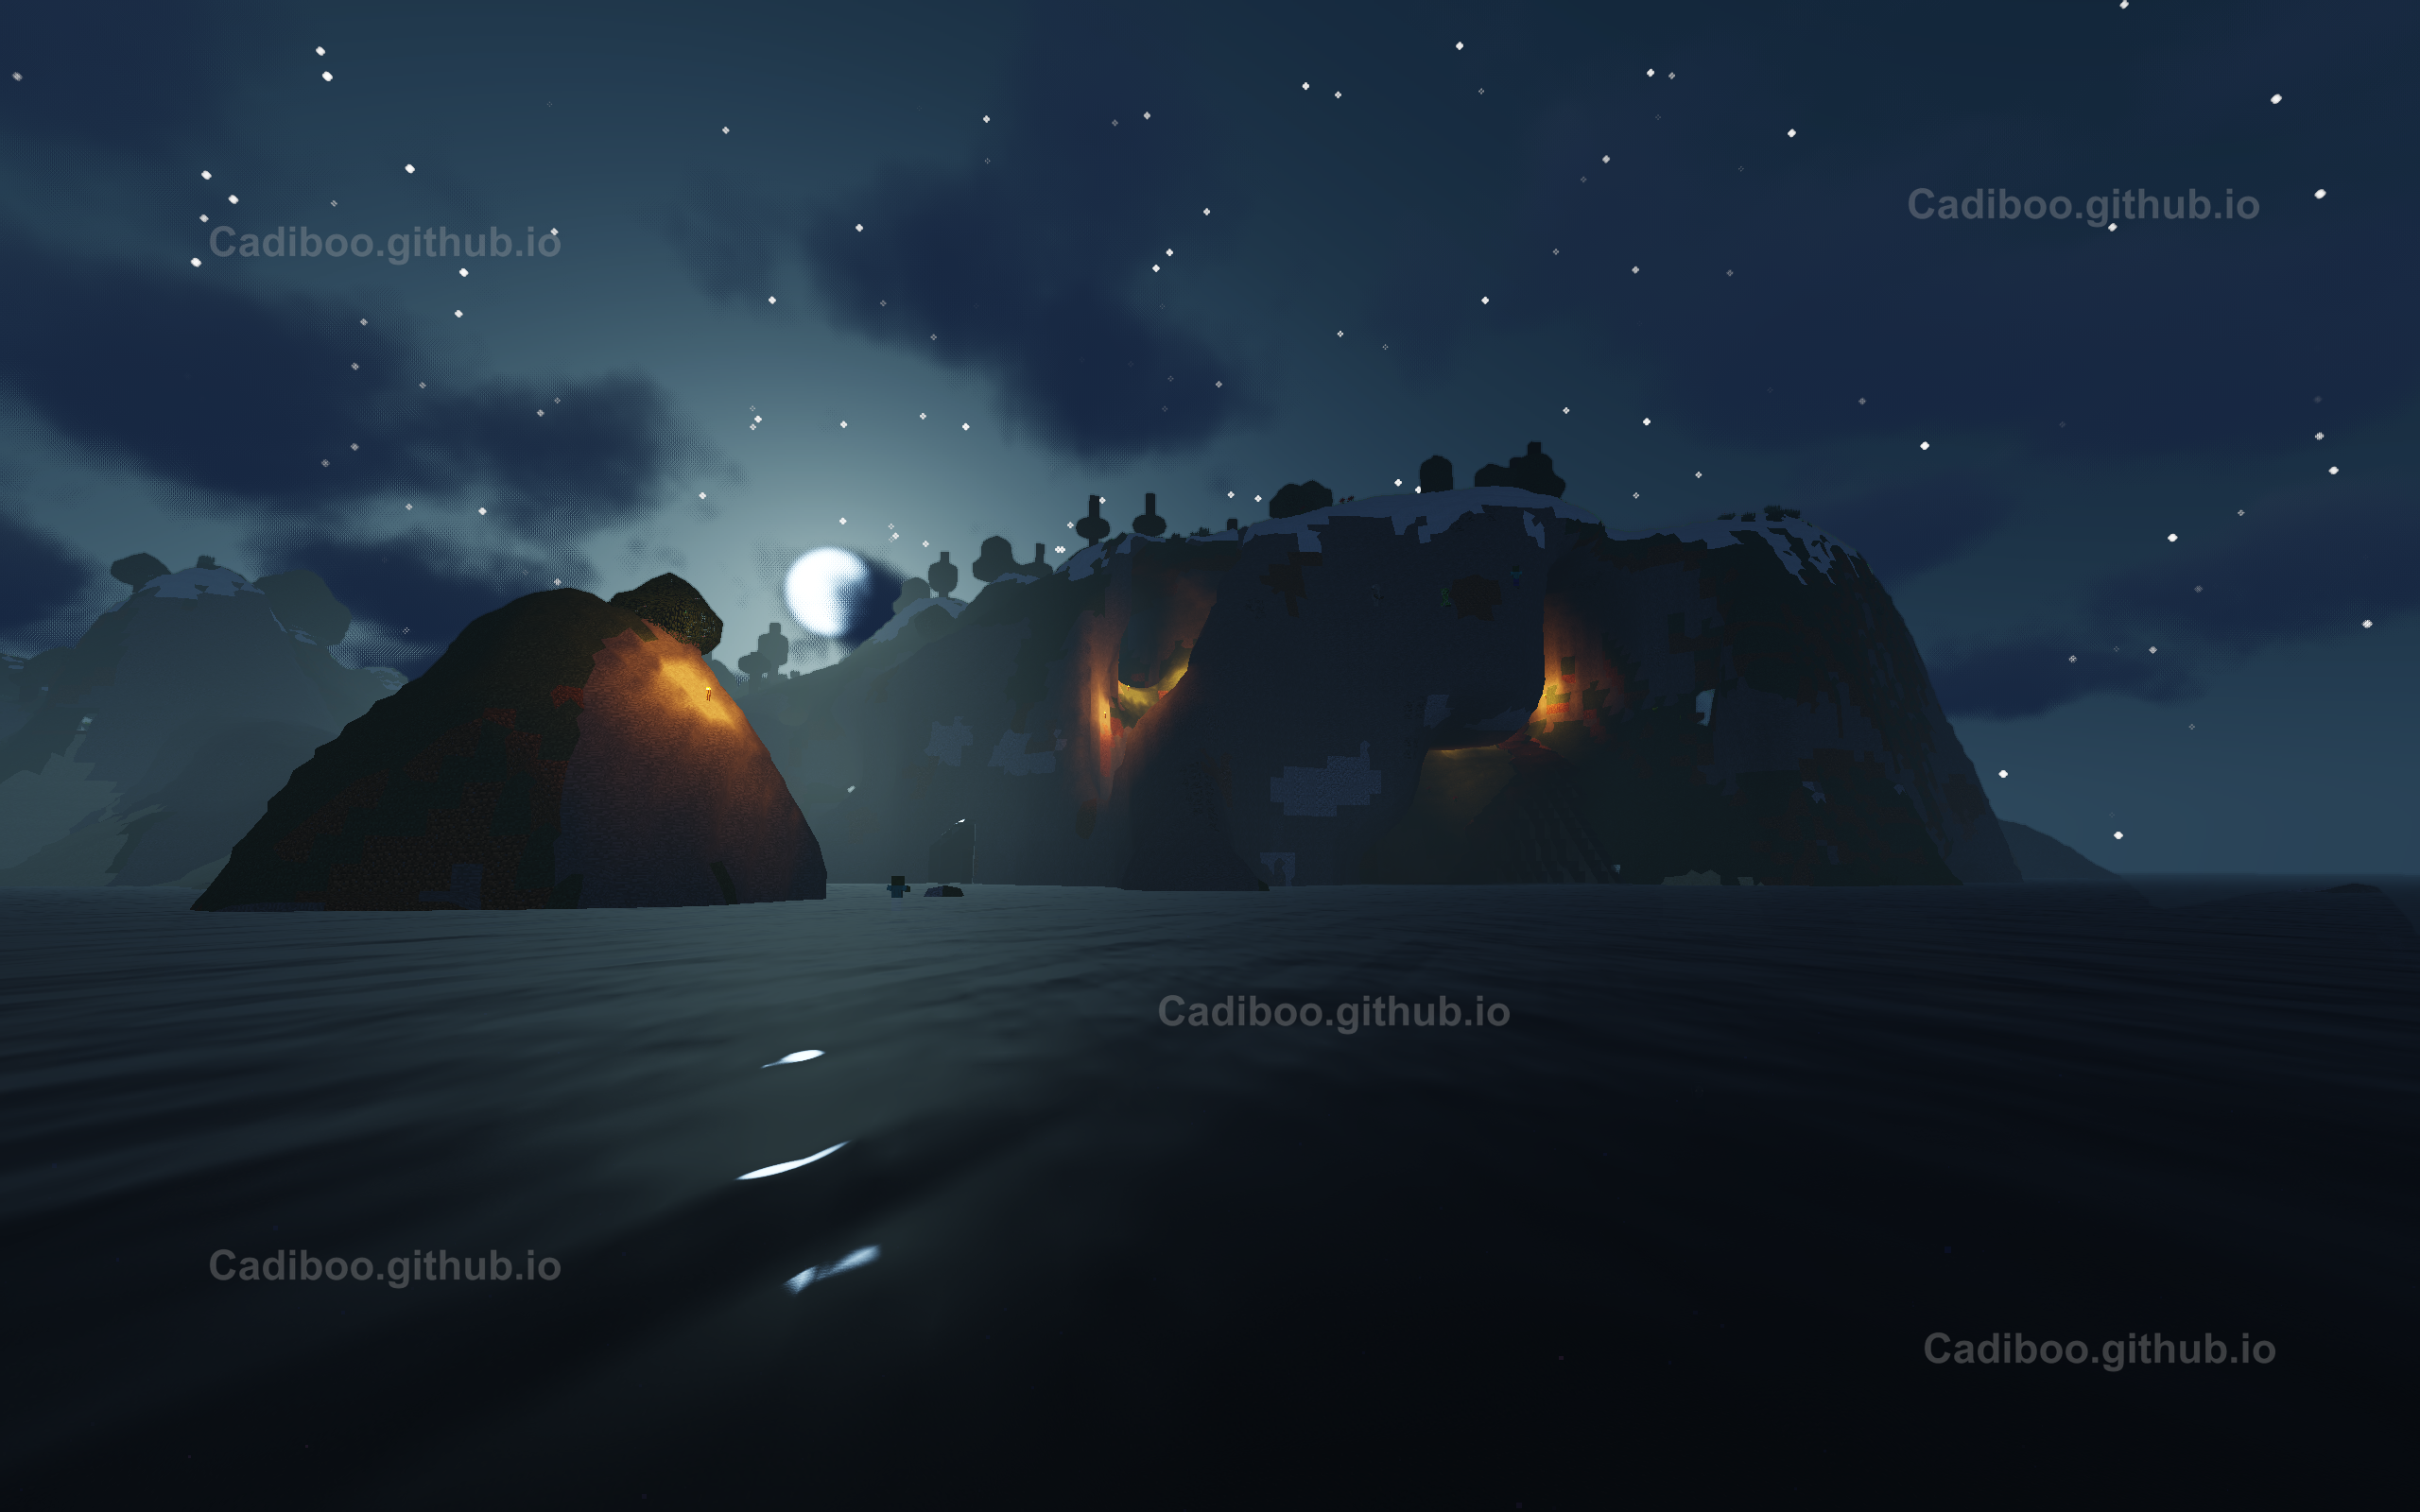 NoCubes (Surface Nets Algorithm) on water looking at cliff with caves with Shaders